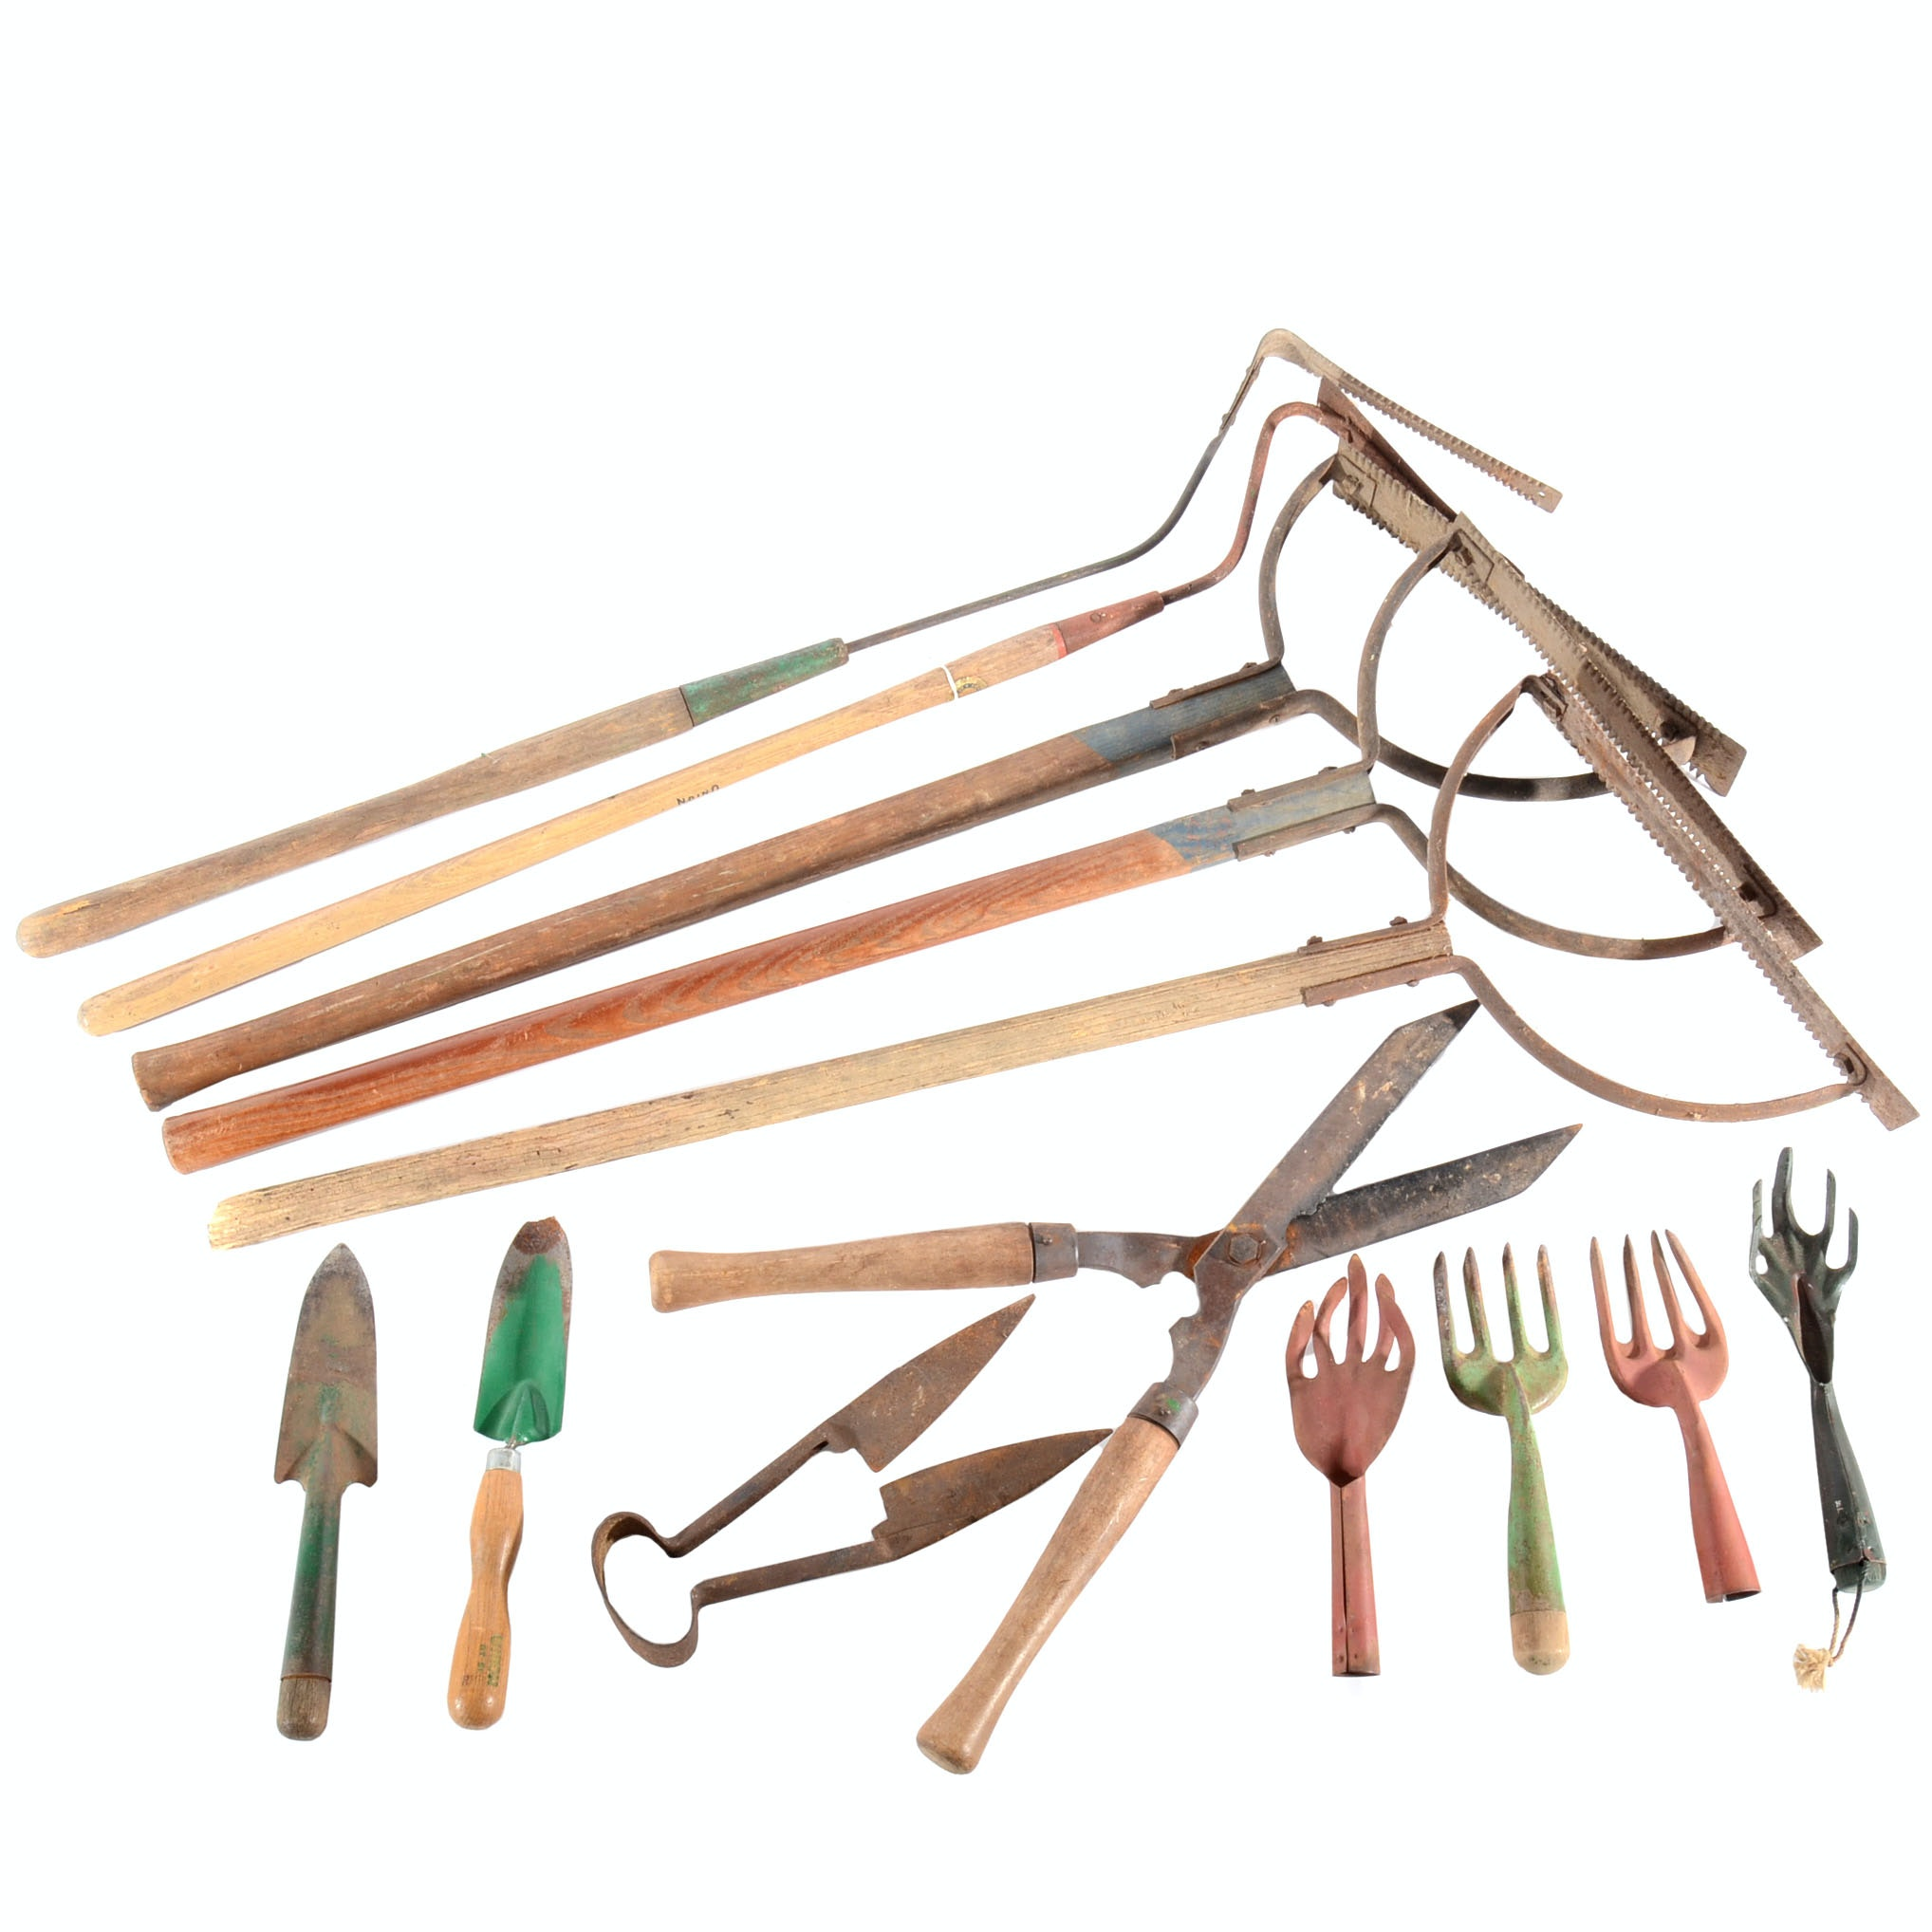 Collection of Vintage and Antique Garden Tools